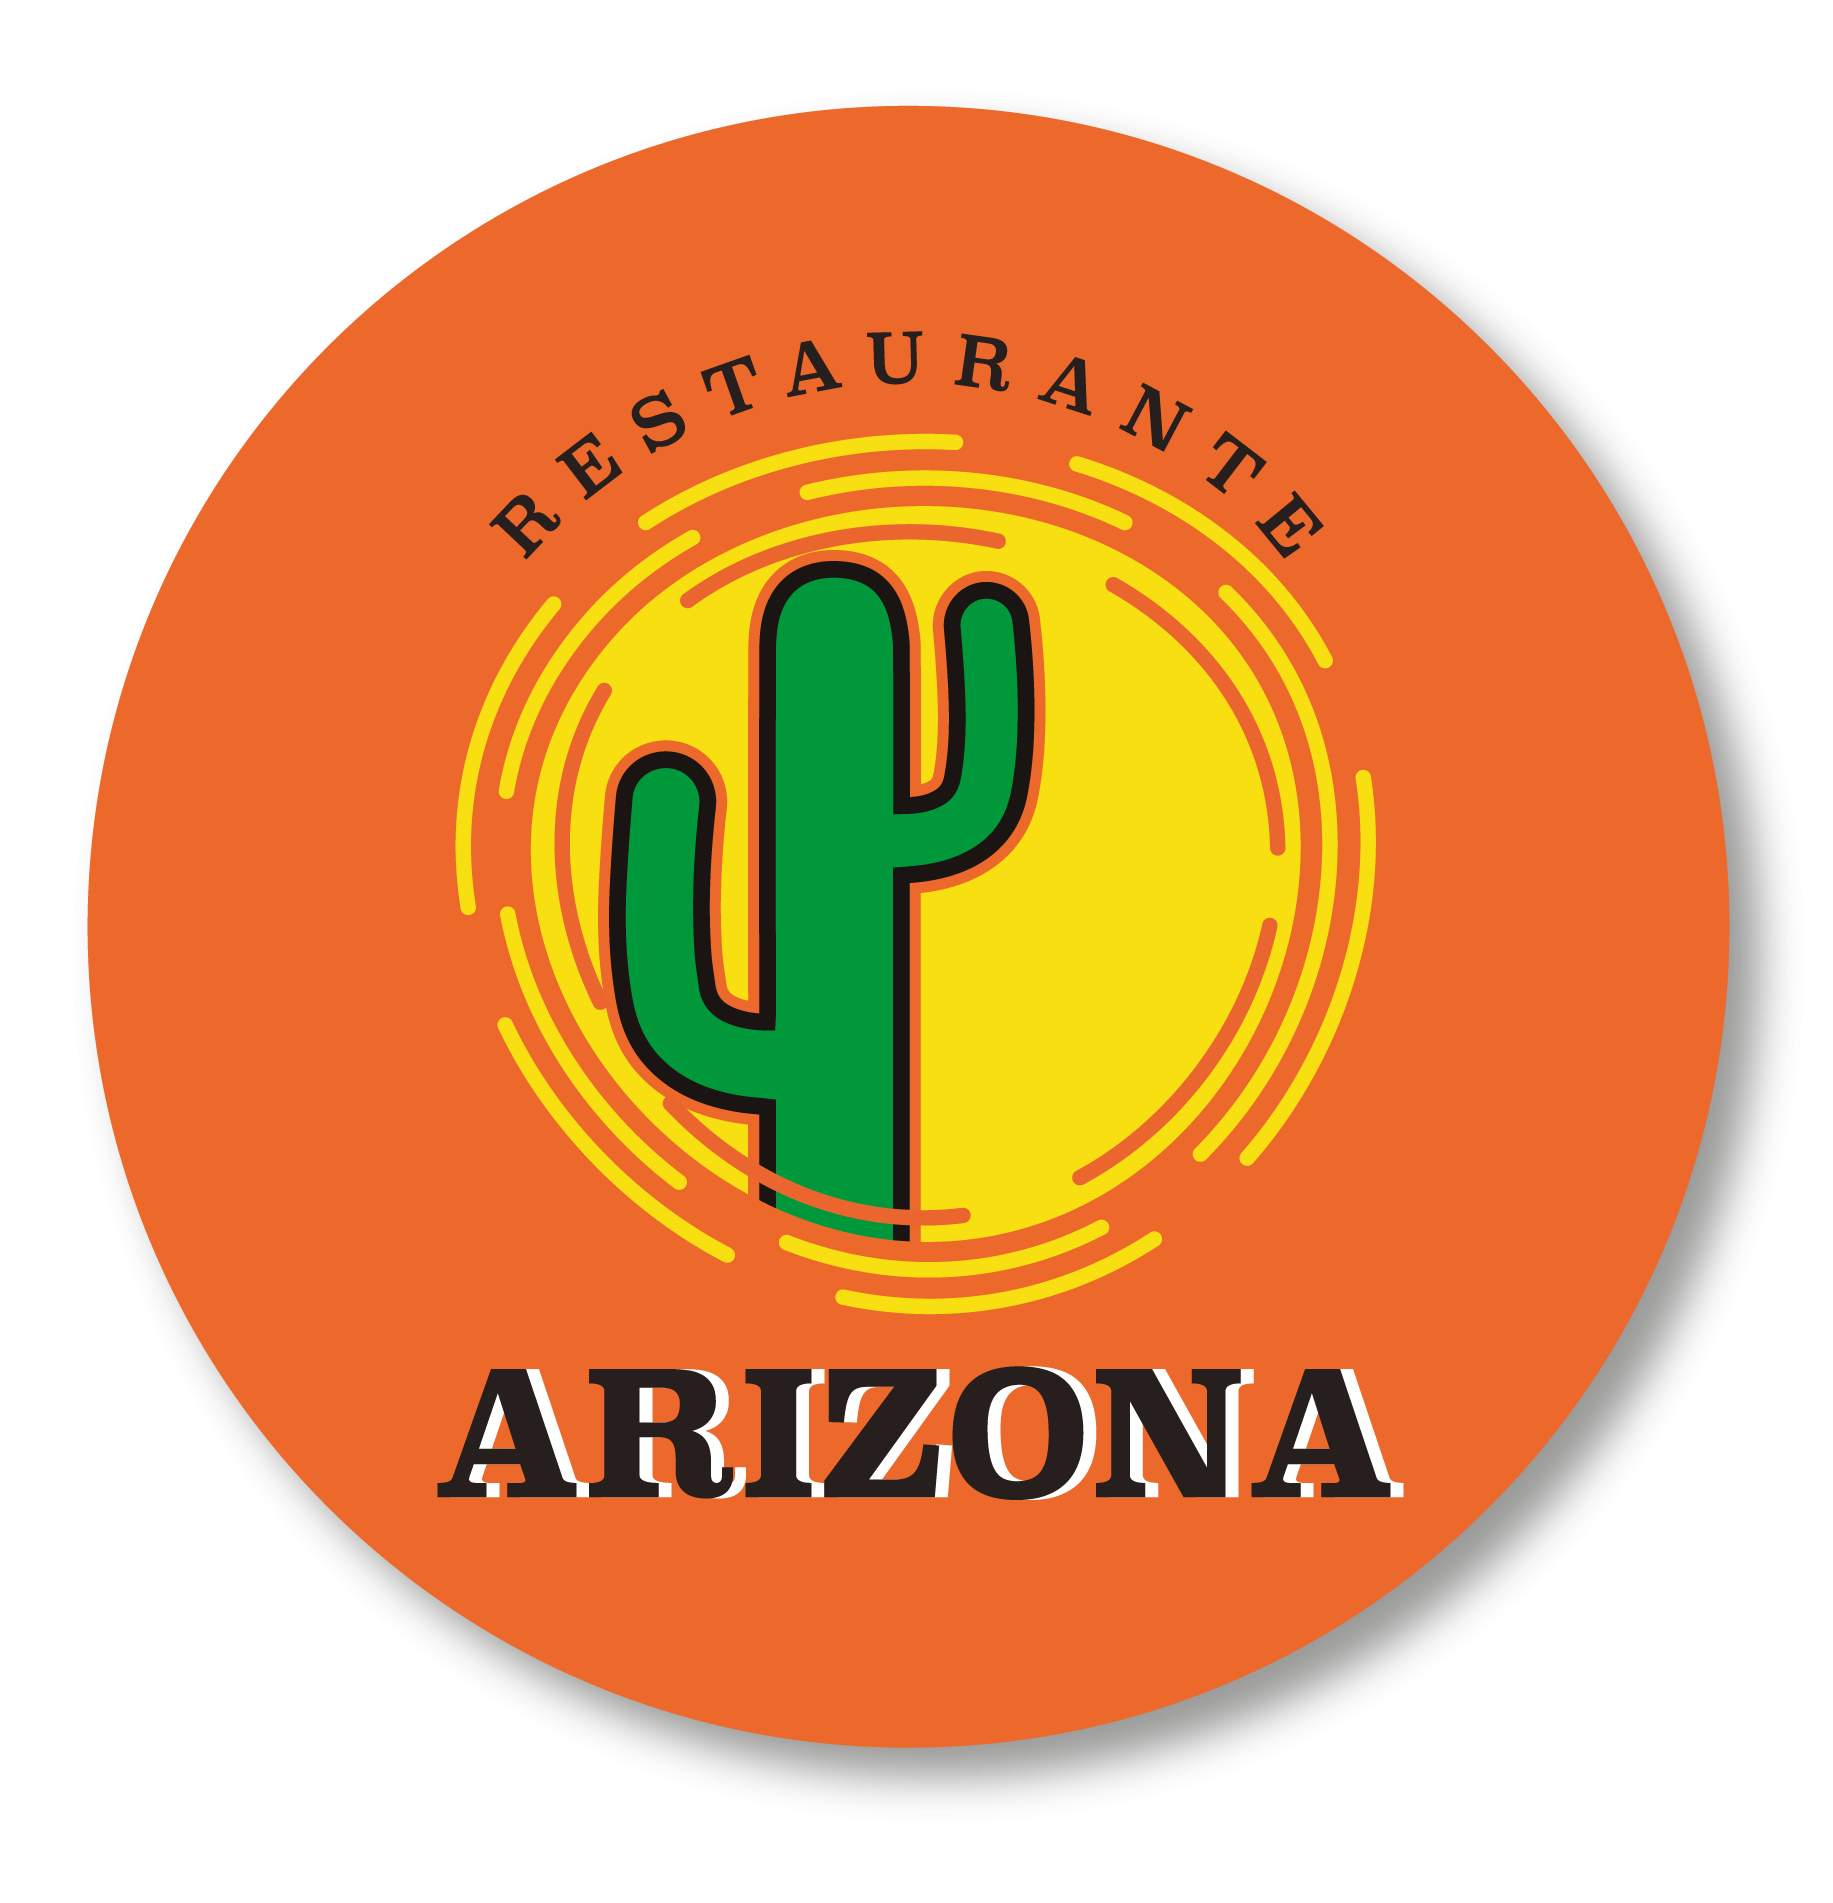 Restaurante Arizona